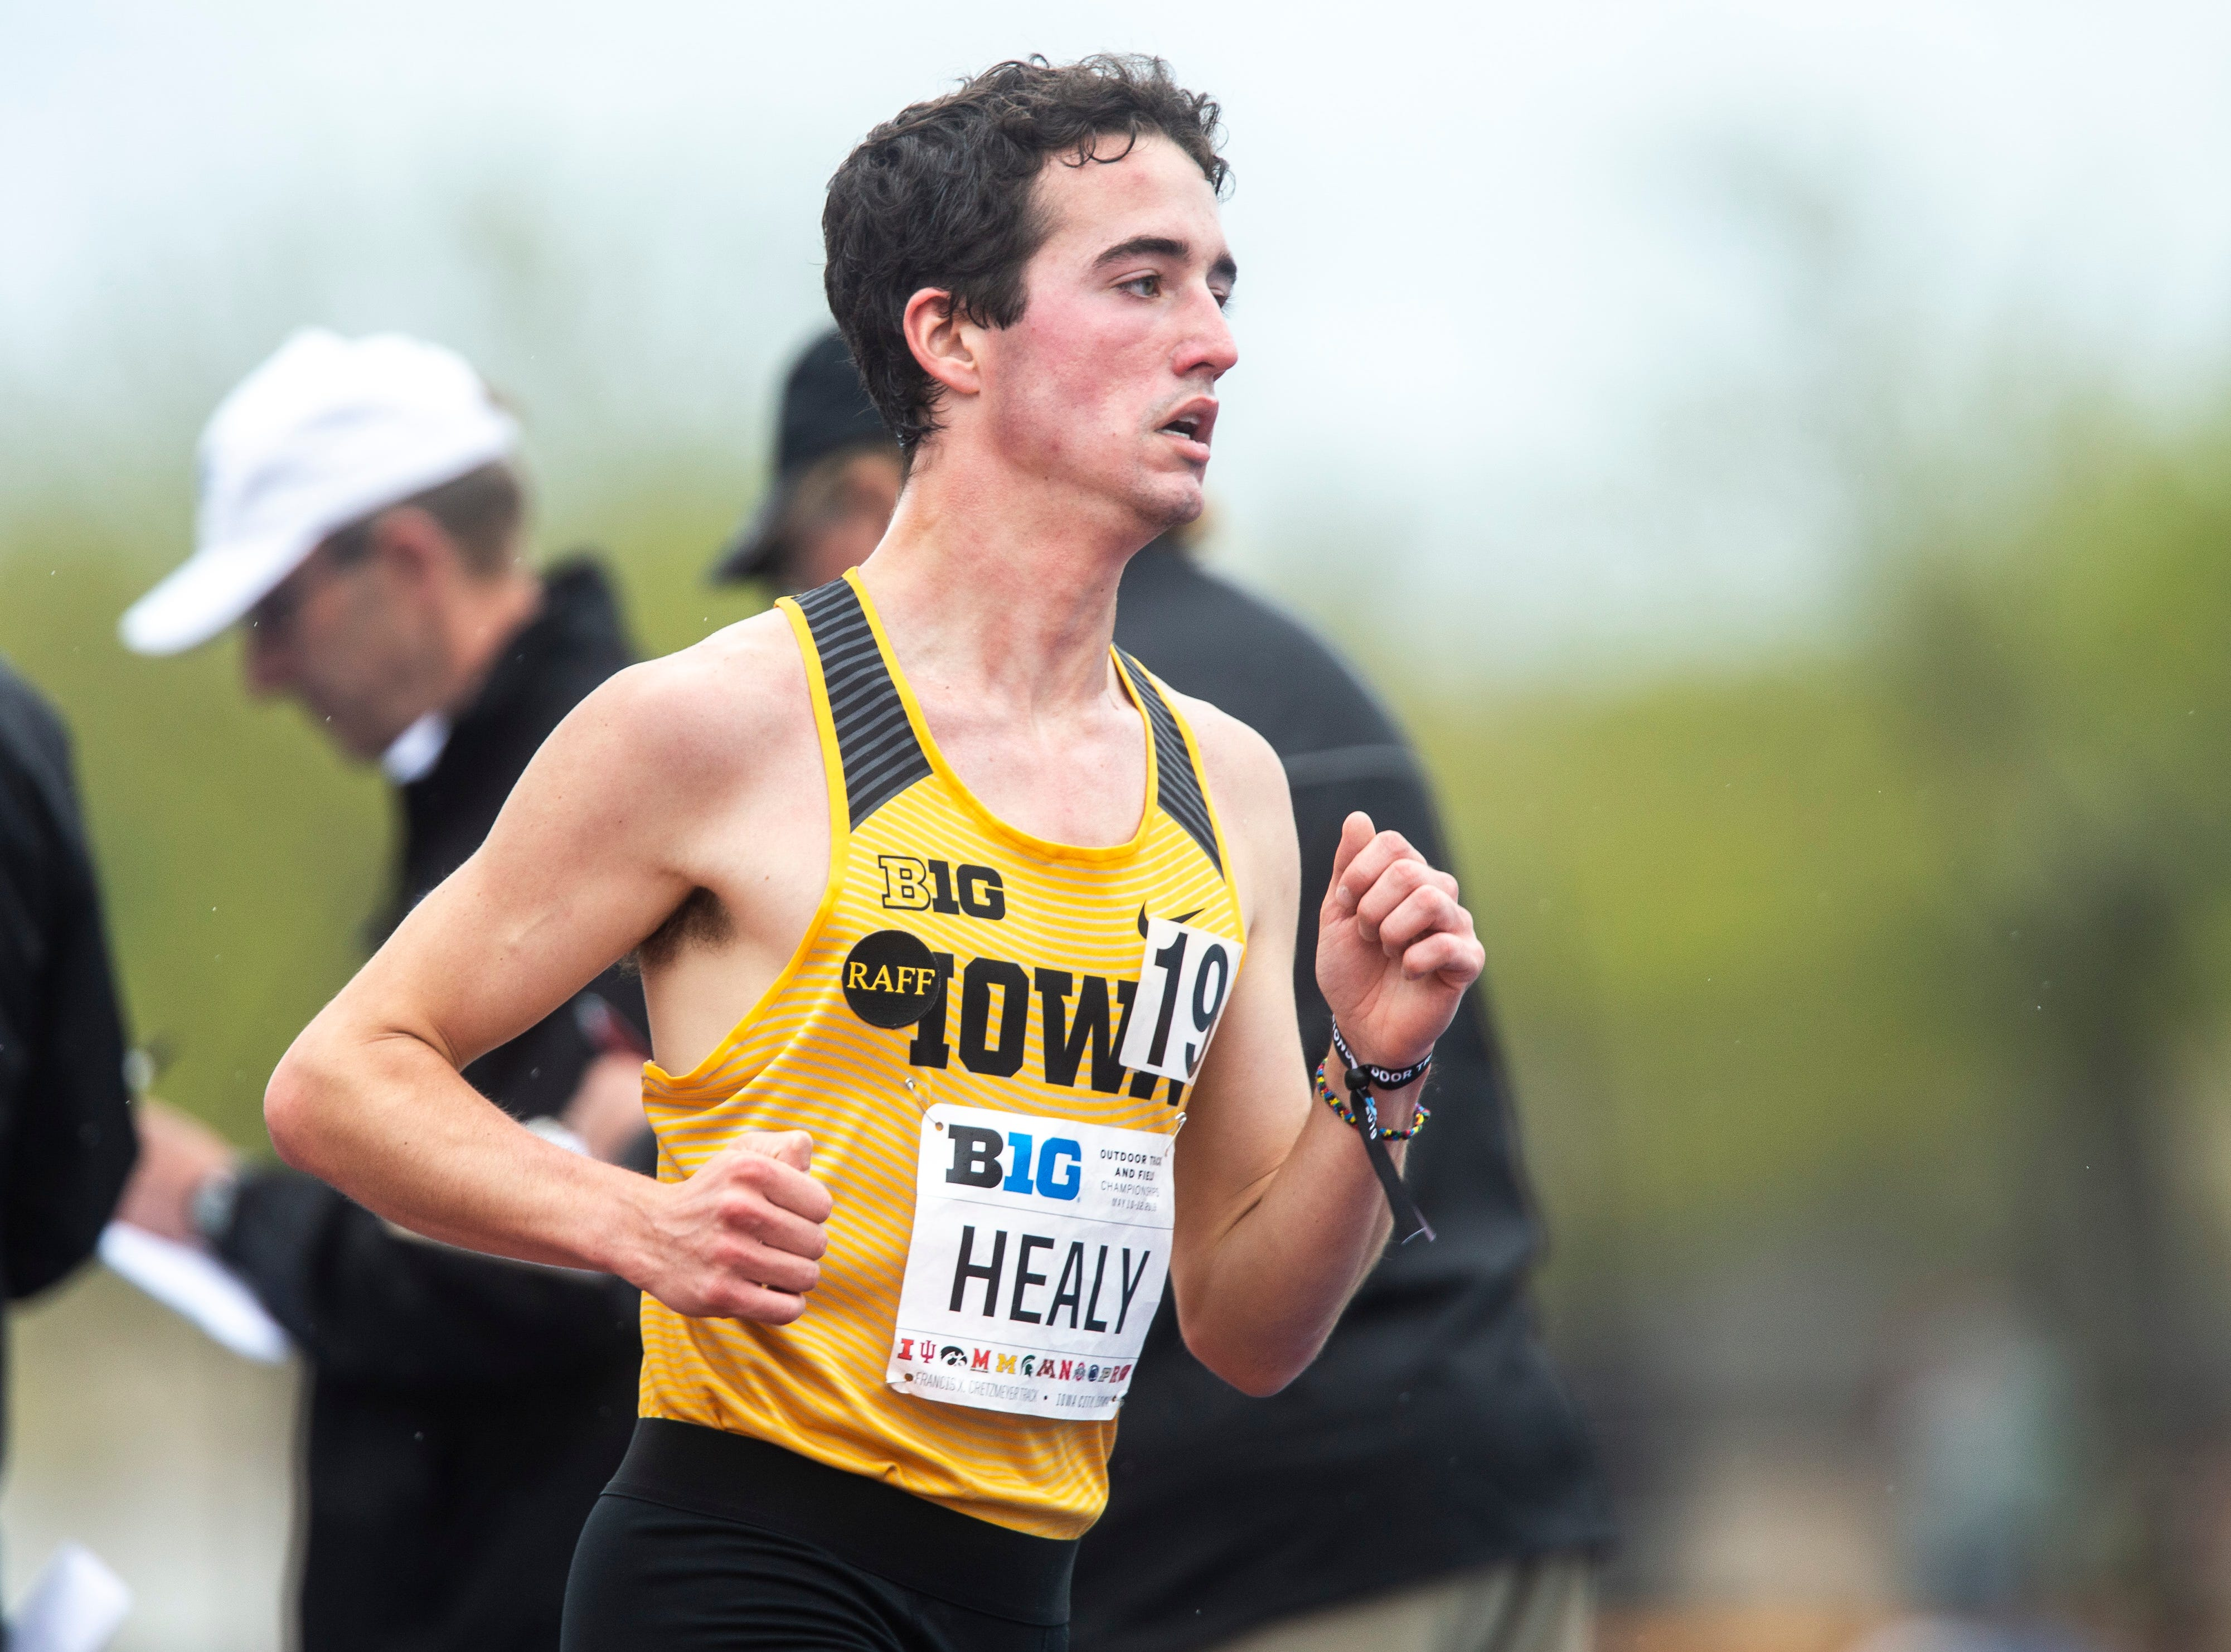 Iowa freshman Noah Healy competes in the 5,000 meter finals during the final day of Big Ten track and field outdoor championships, Sunday, May 12, 2019, at Francis X. Cretzmeyer Track on the University of Iowa campus in Iowa City, Iowa.